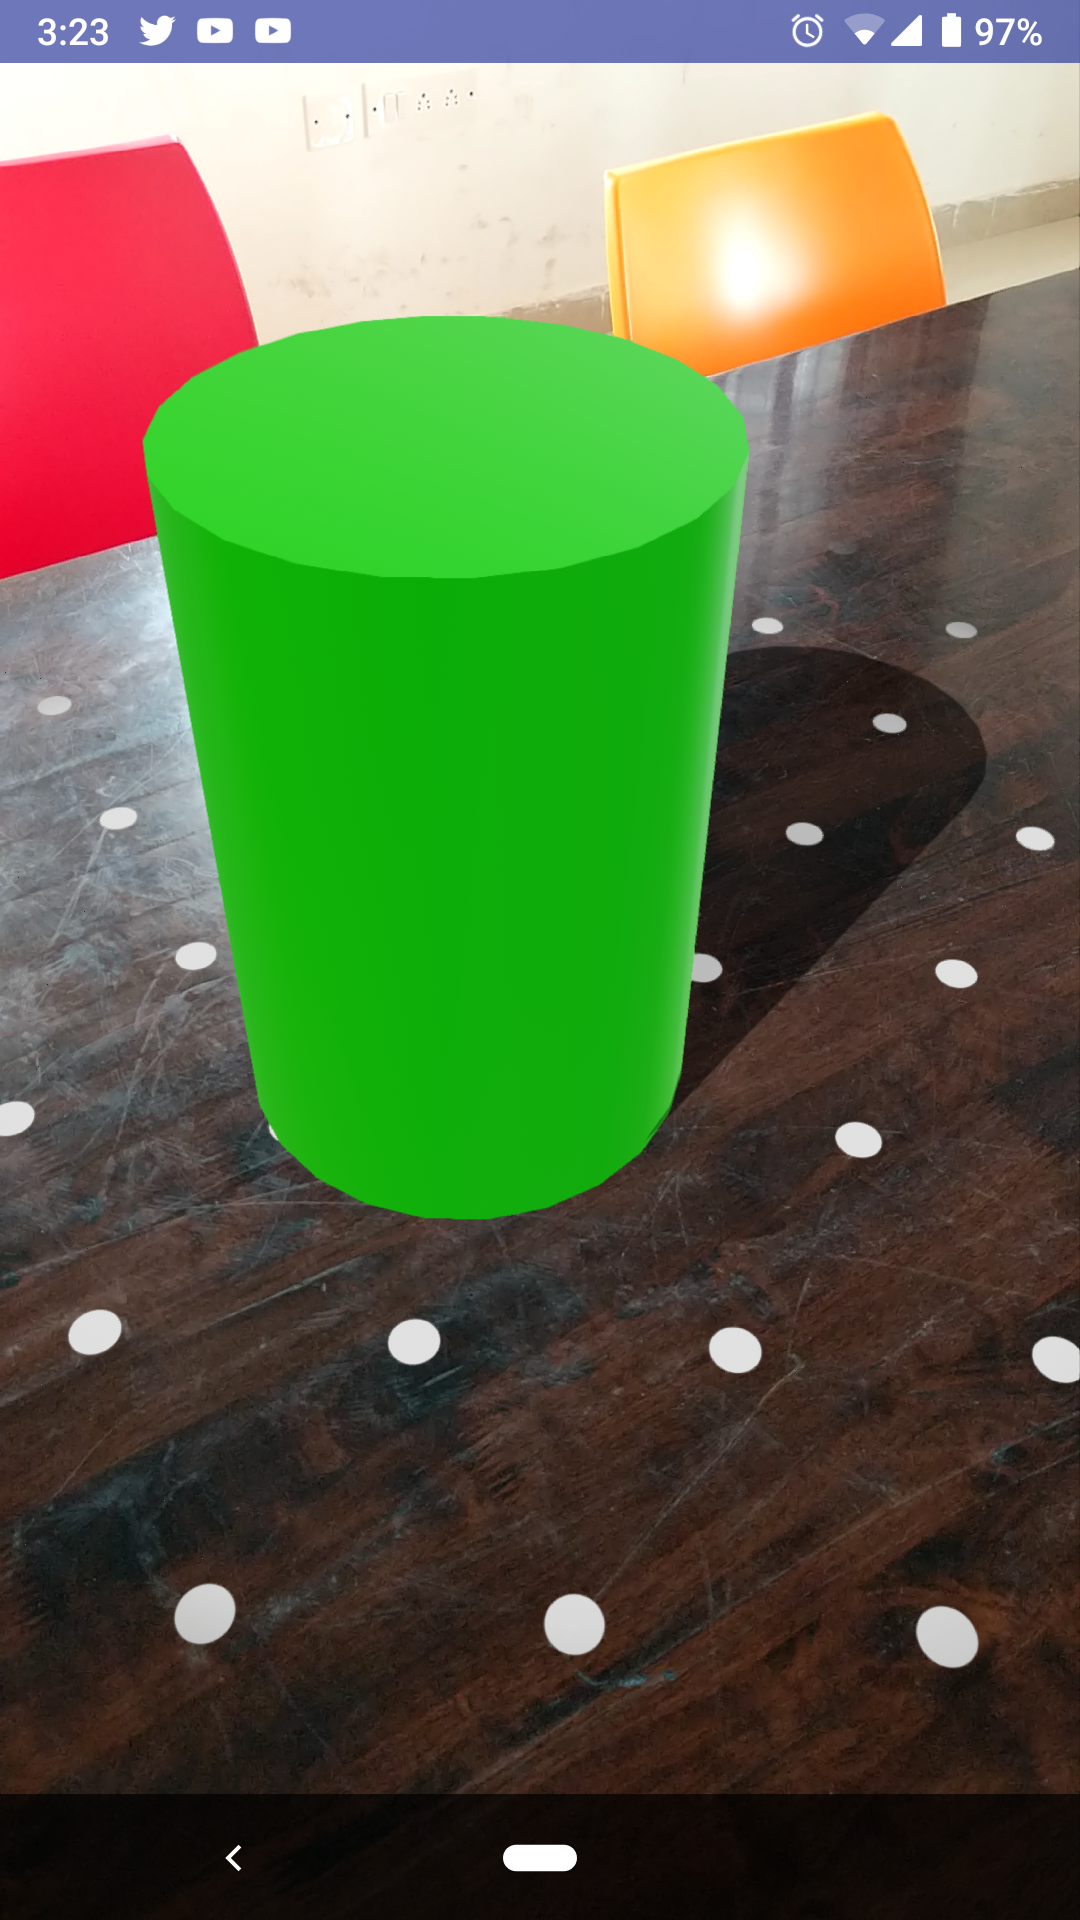 ARCore Cupcakes #2 — Render 3D objects at Runtime using